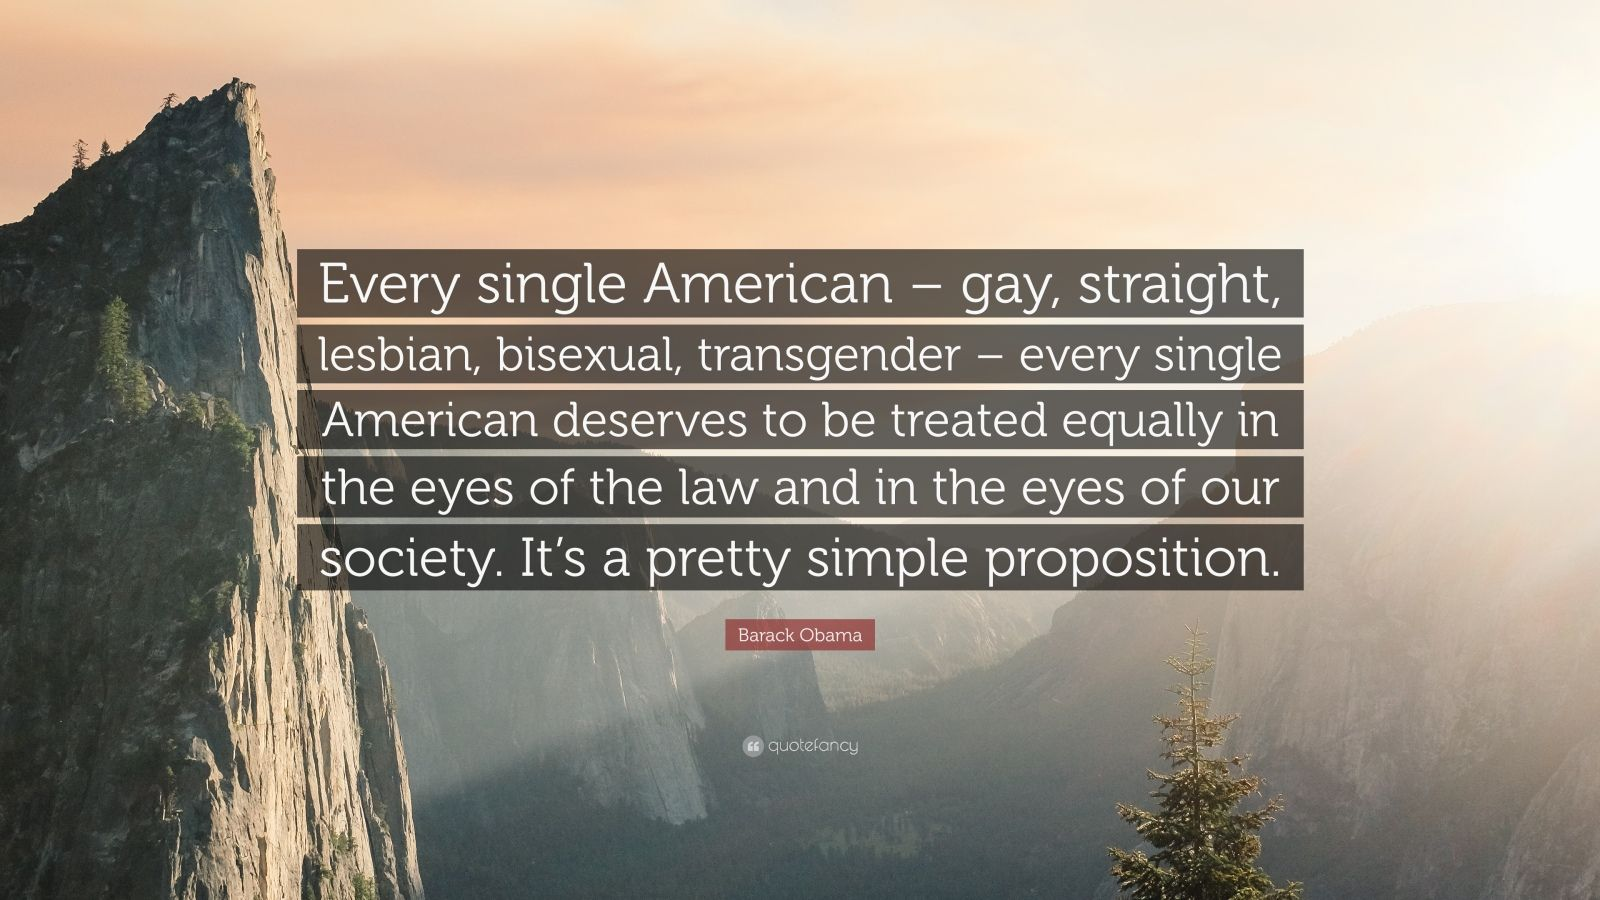 """Barack Obama Quote: """"Every single American – gay, straight, lesbian, bisexual, transgender – every single American deserves to be treated equally in the eyes of the law and in the eyes of our society. It's a pretty simple proposition."""""""